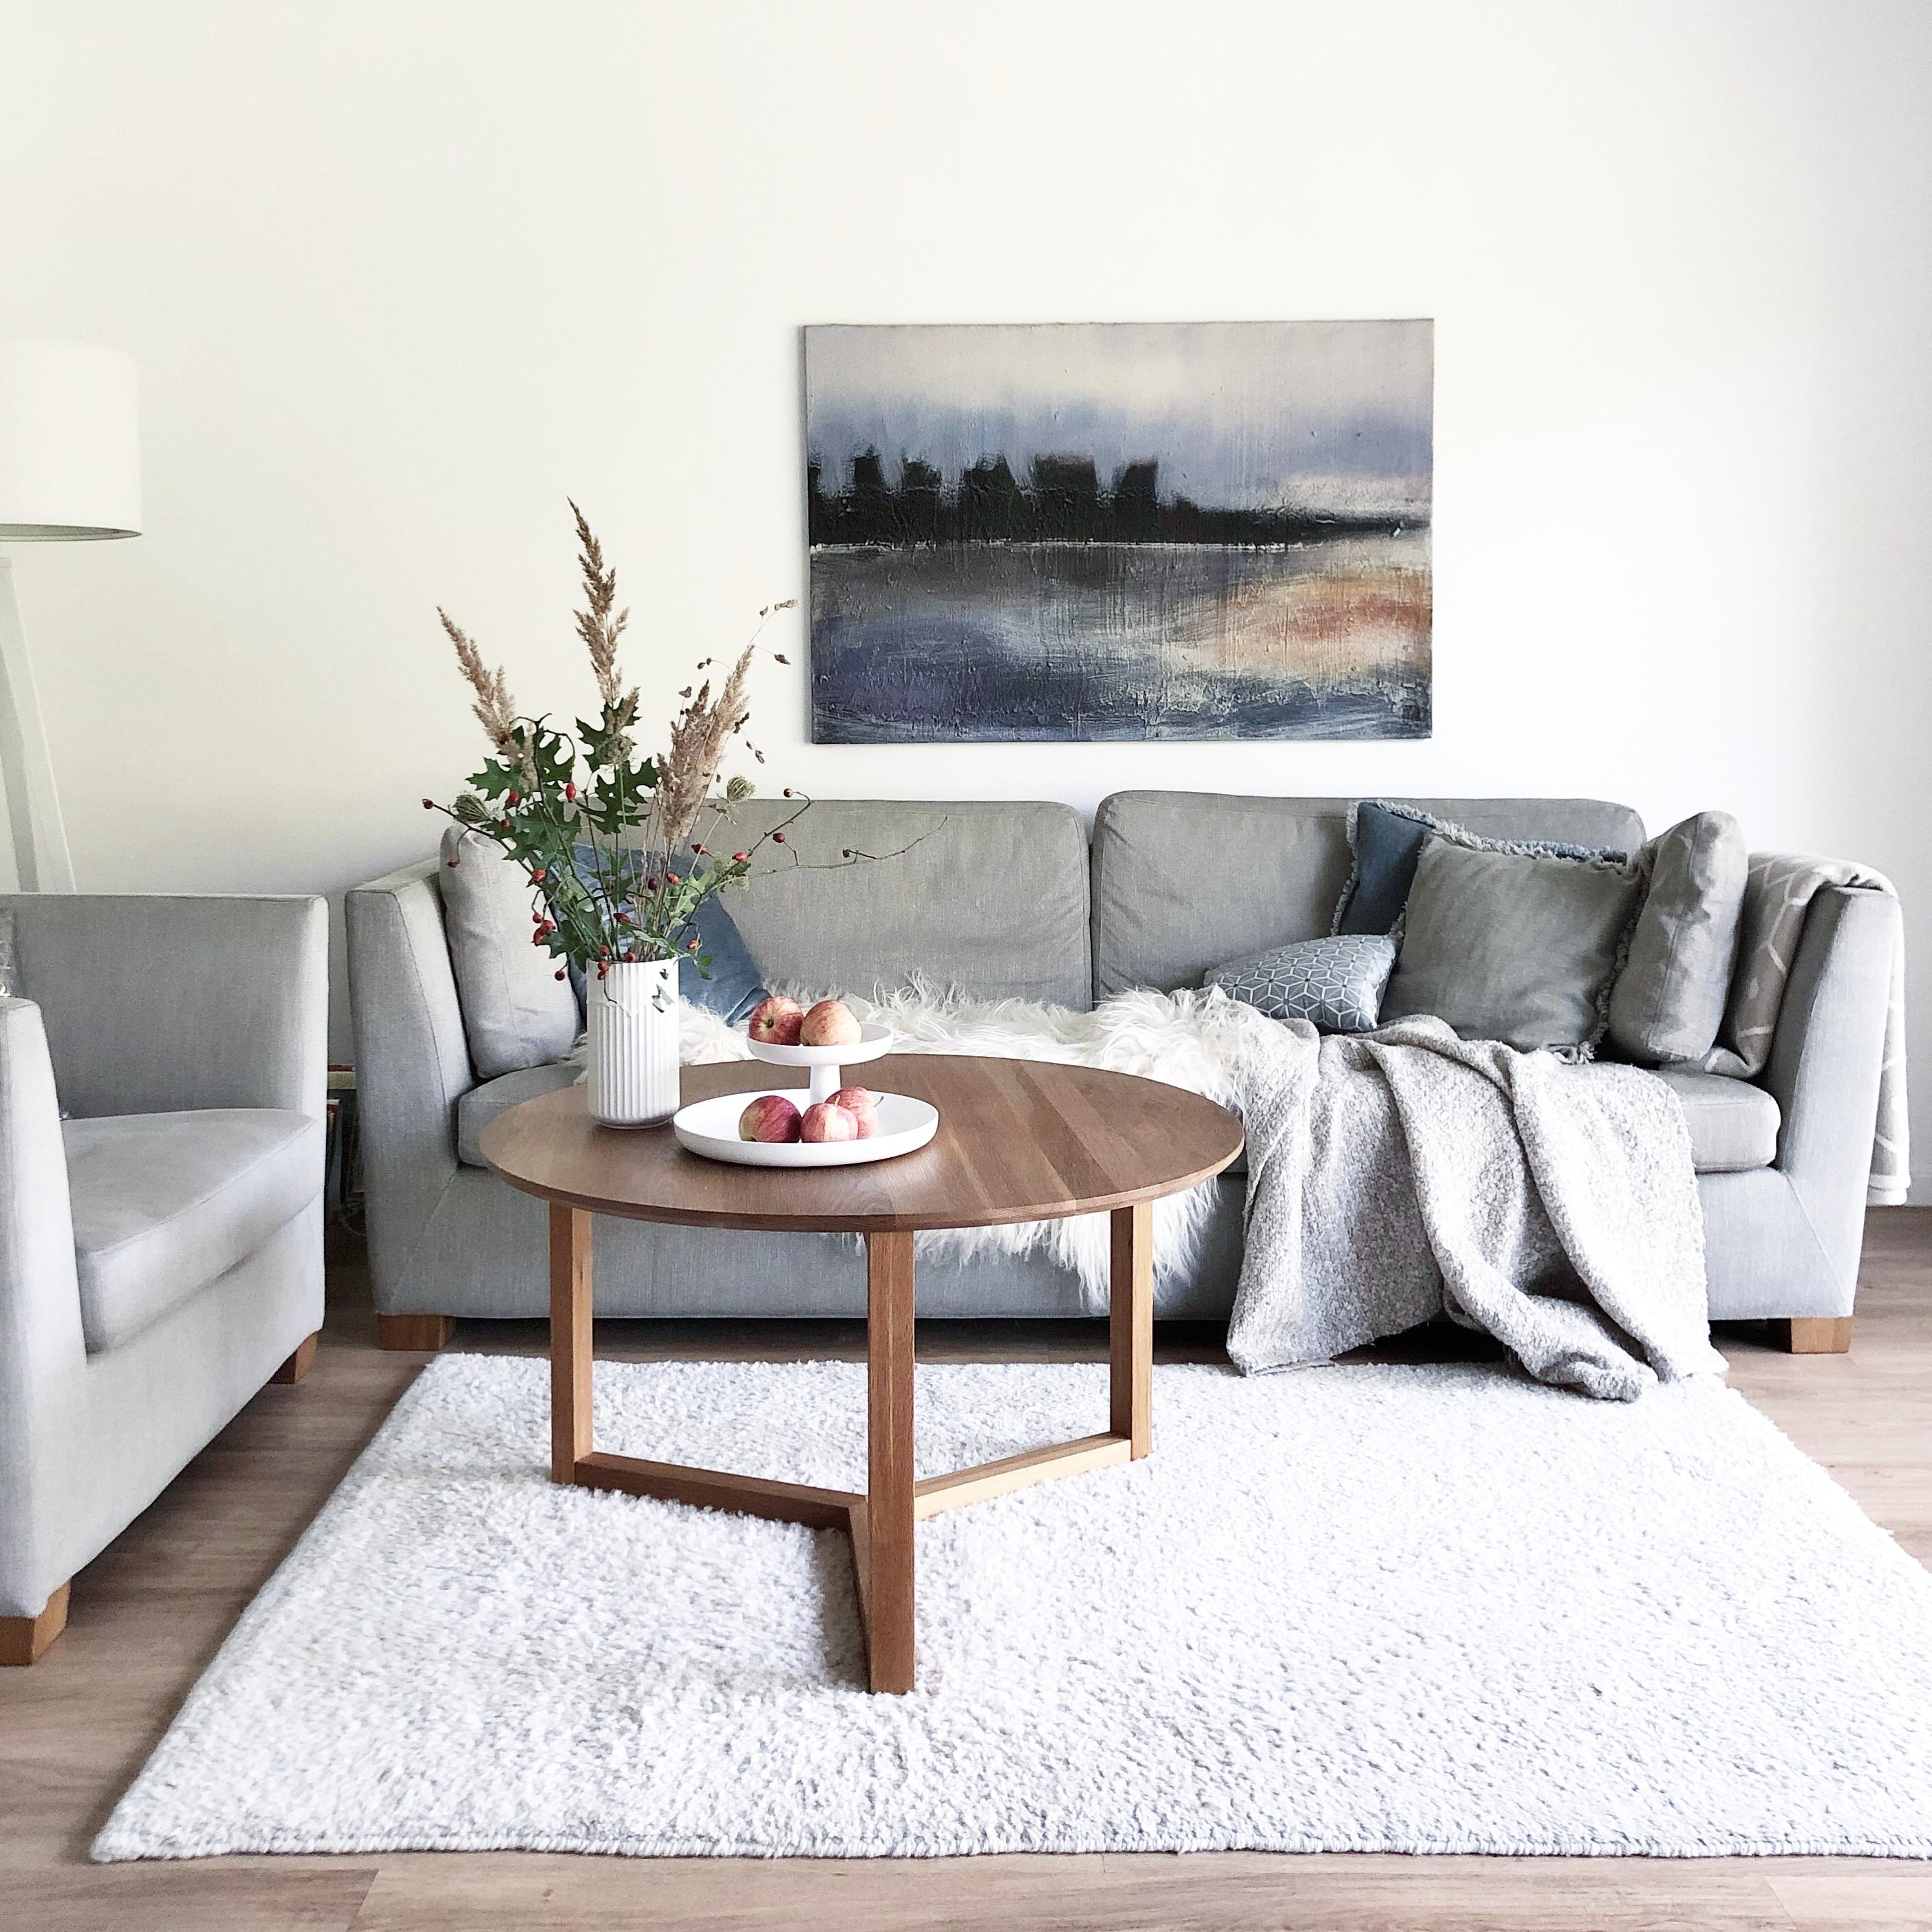 Home is where my couch is. 